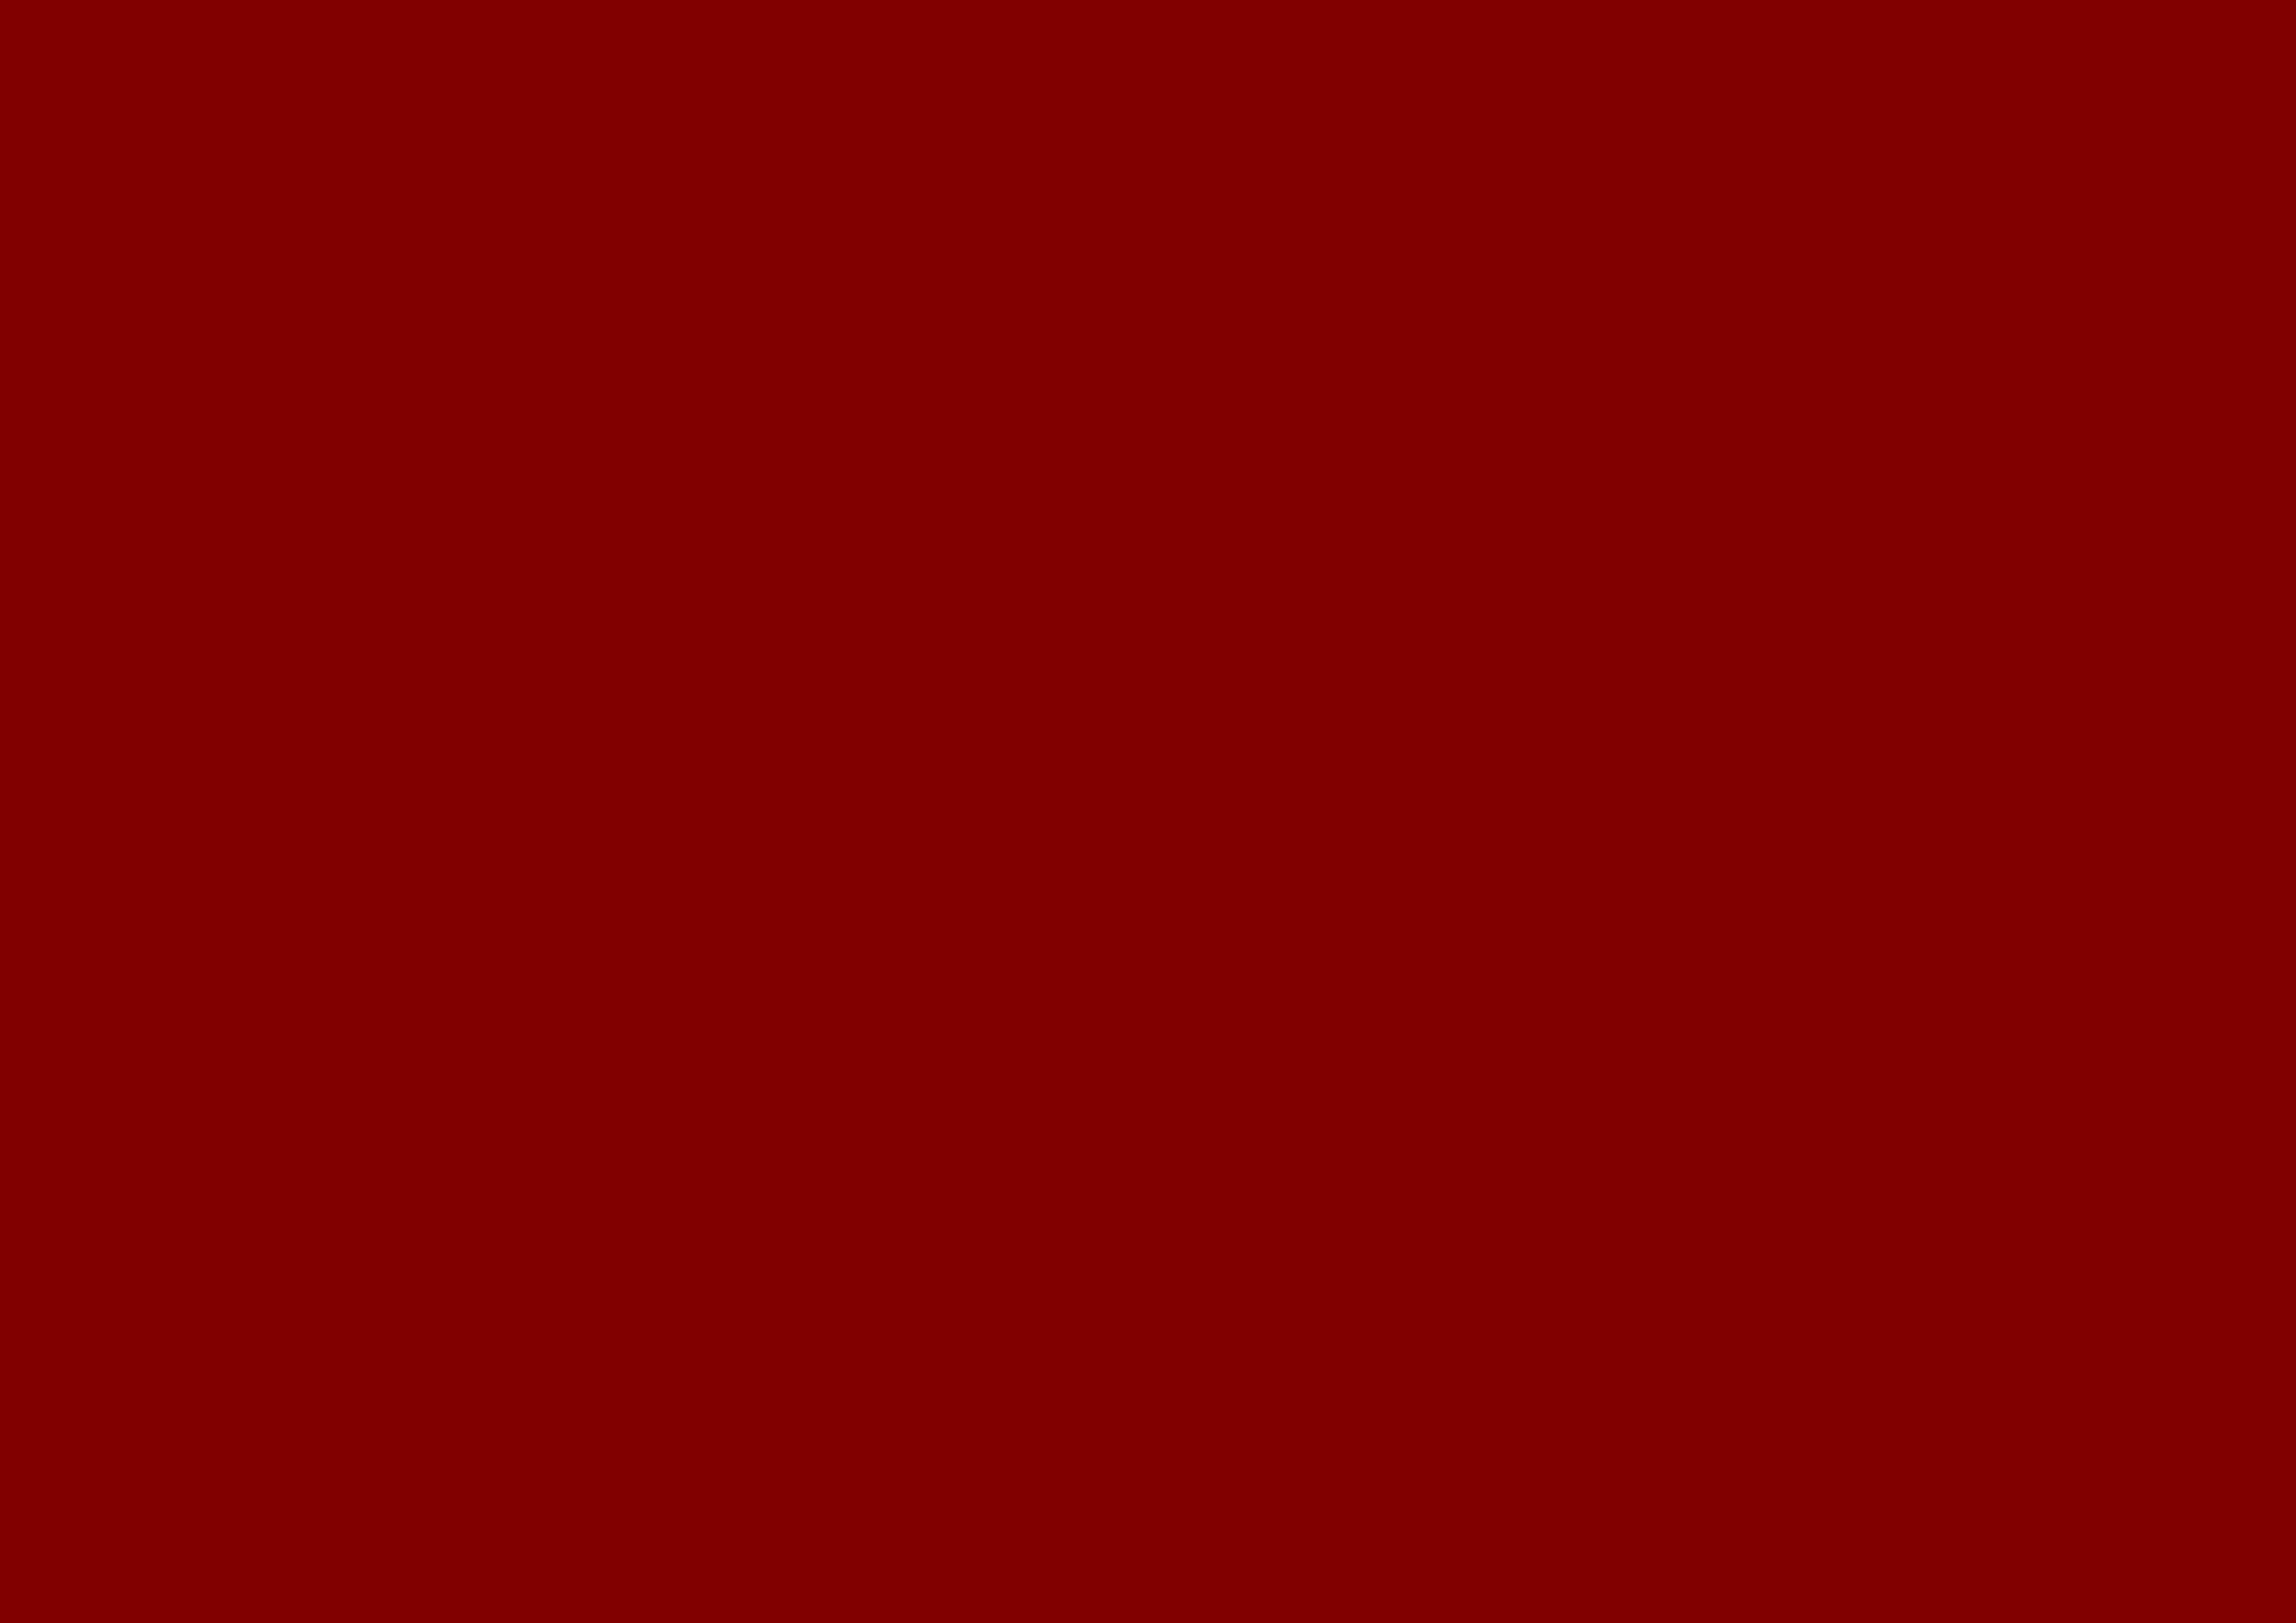 3508x2480 Maroon Web Solid Color Background